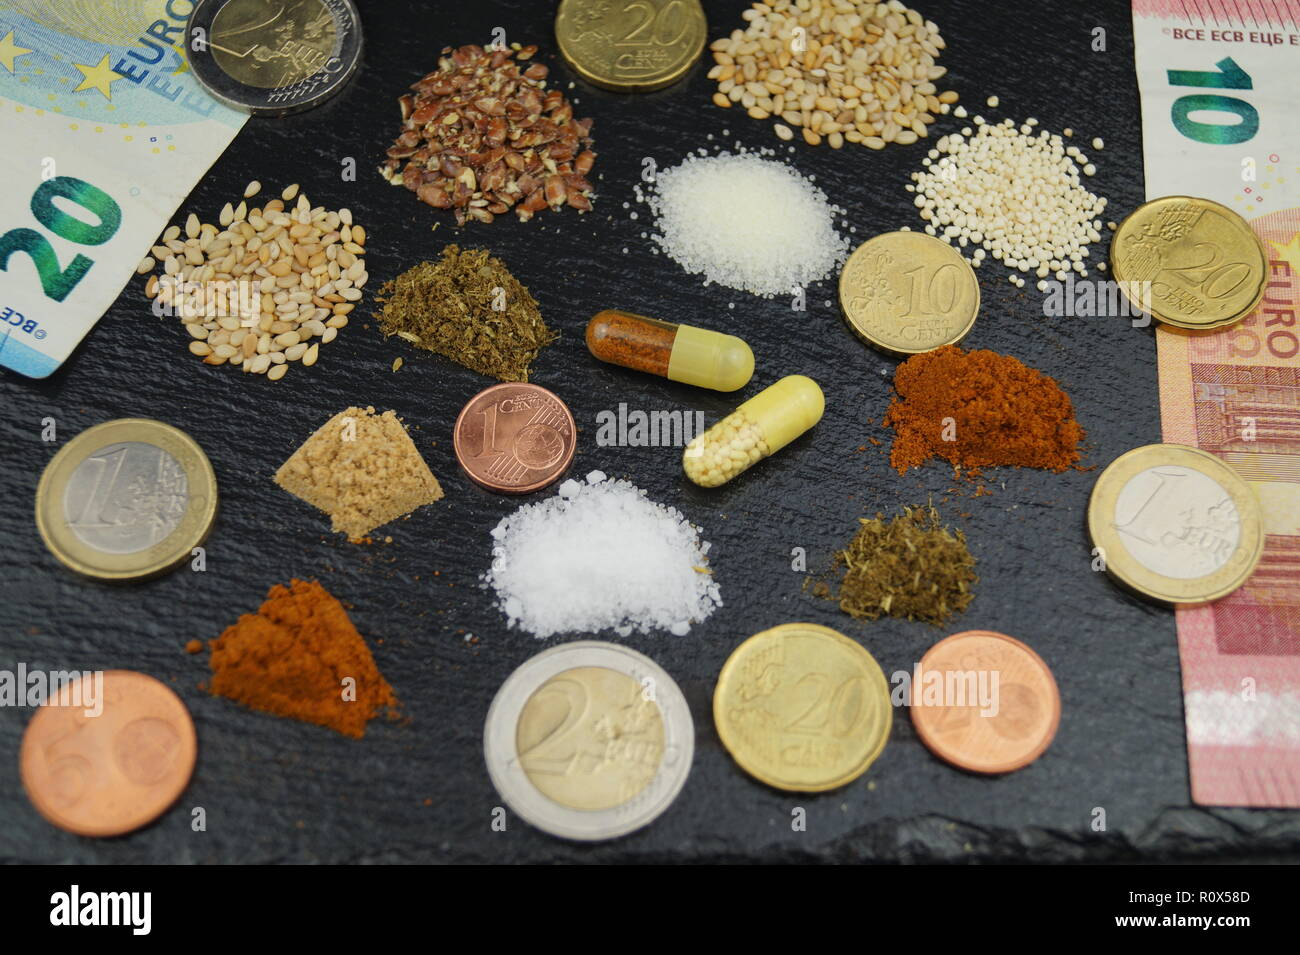 Big Business with dietary supplements - Stock Image